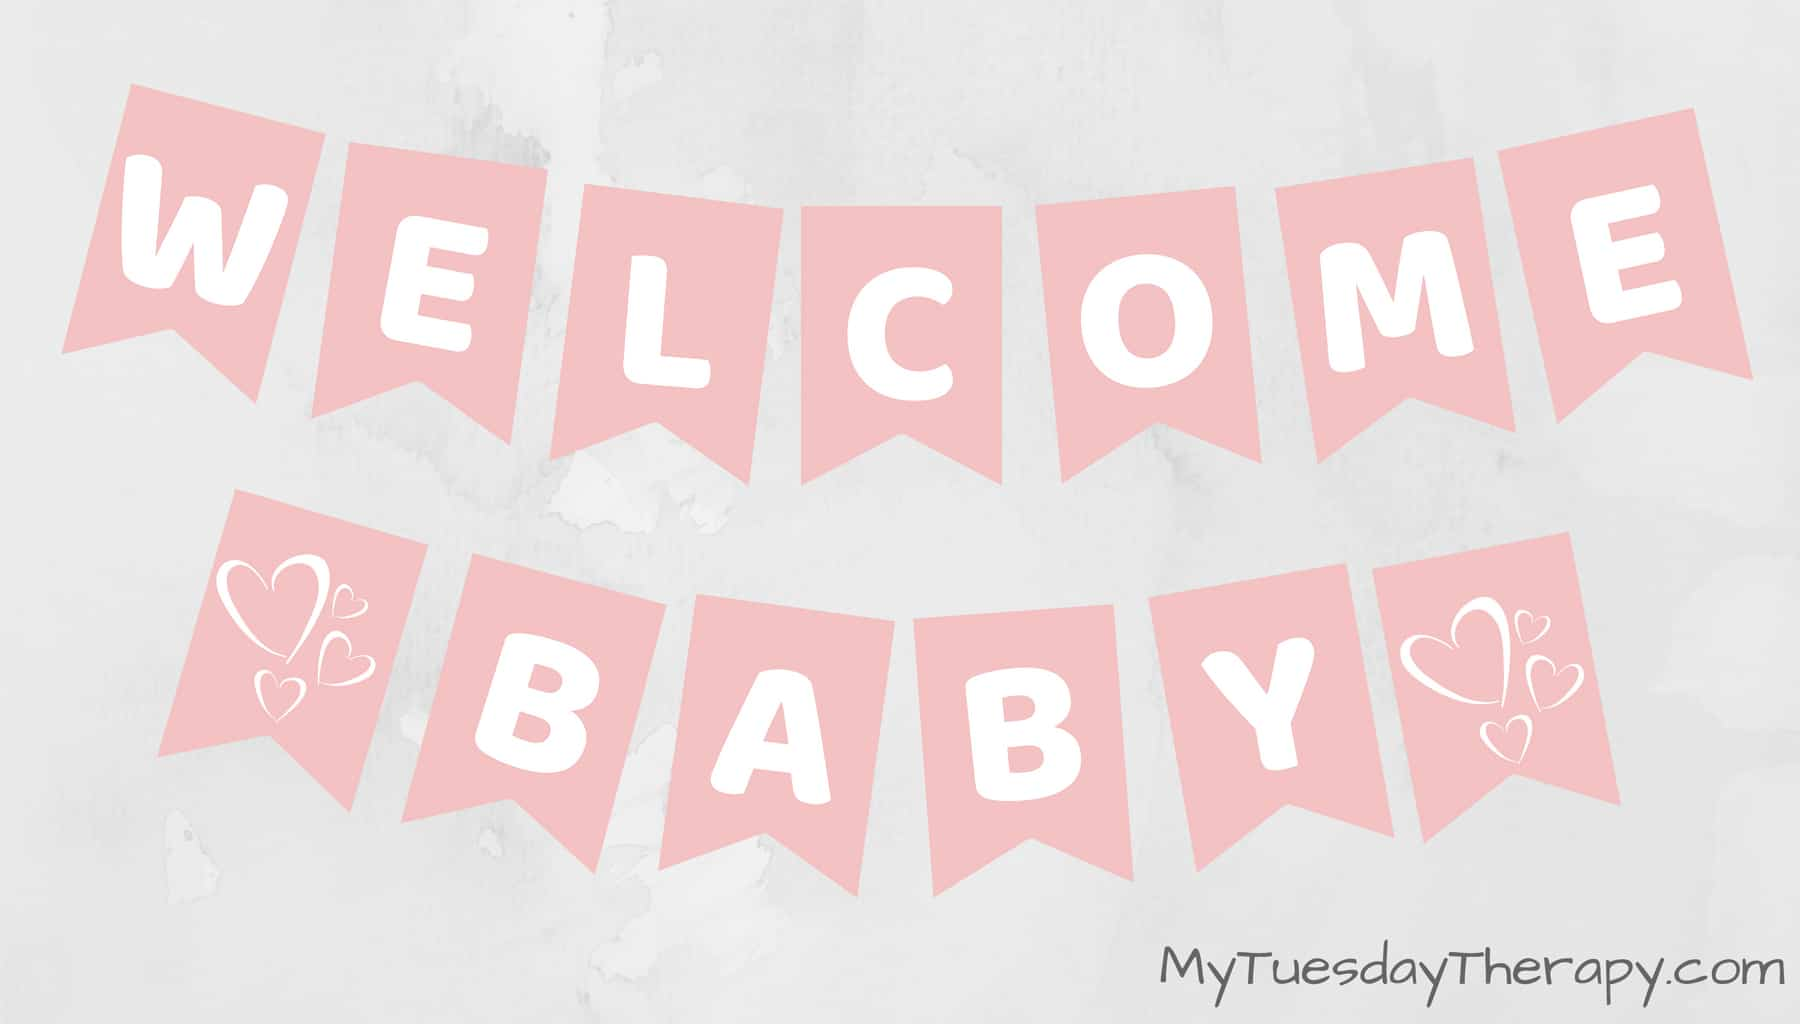 Baby Shower Banner. Cheap baby shower decoration ideas.